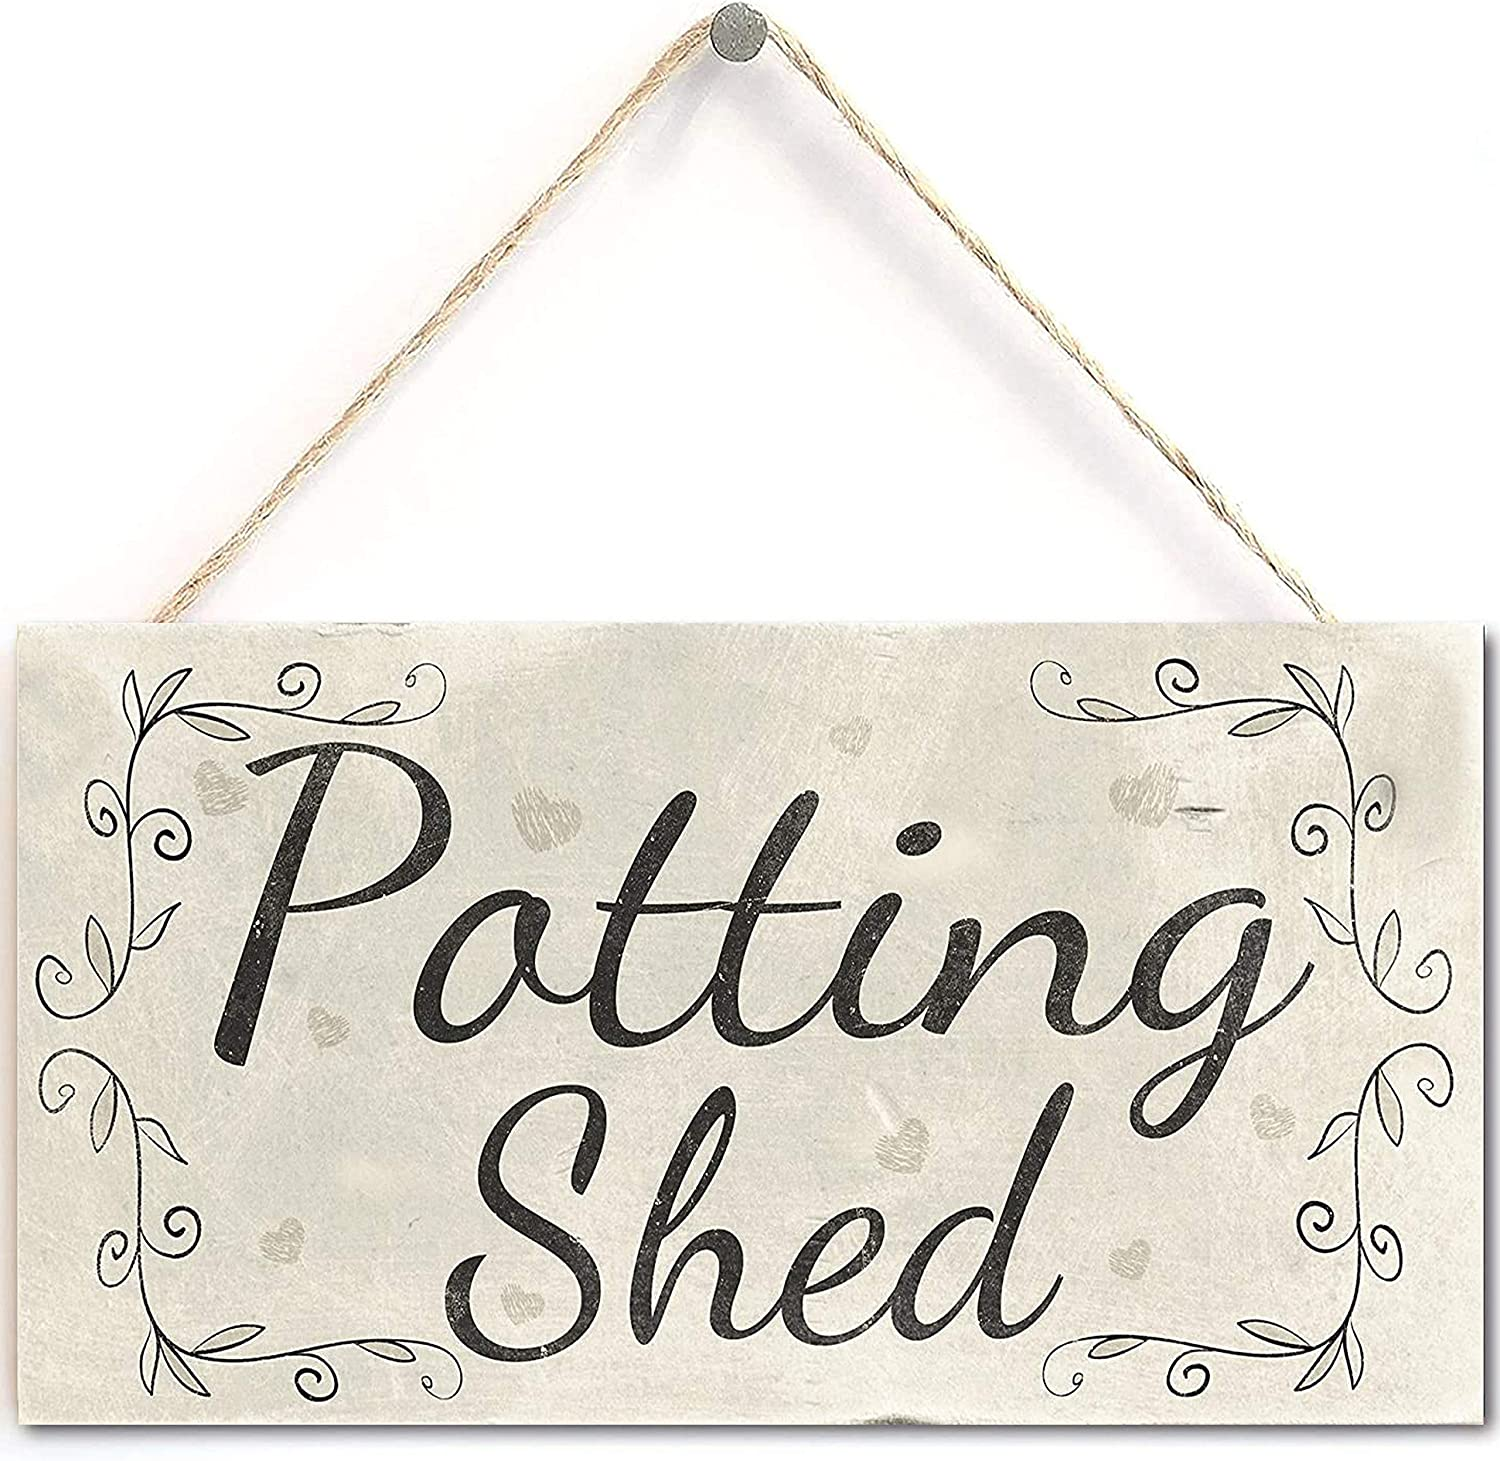 None/Brand Potting Shed - French Country Decor Wood Sign/Plaque Gardening Gift